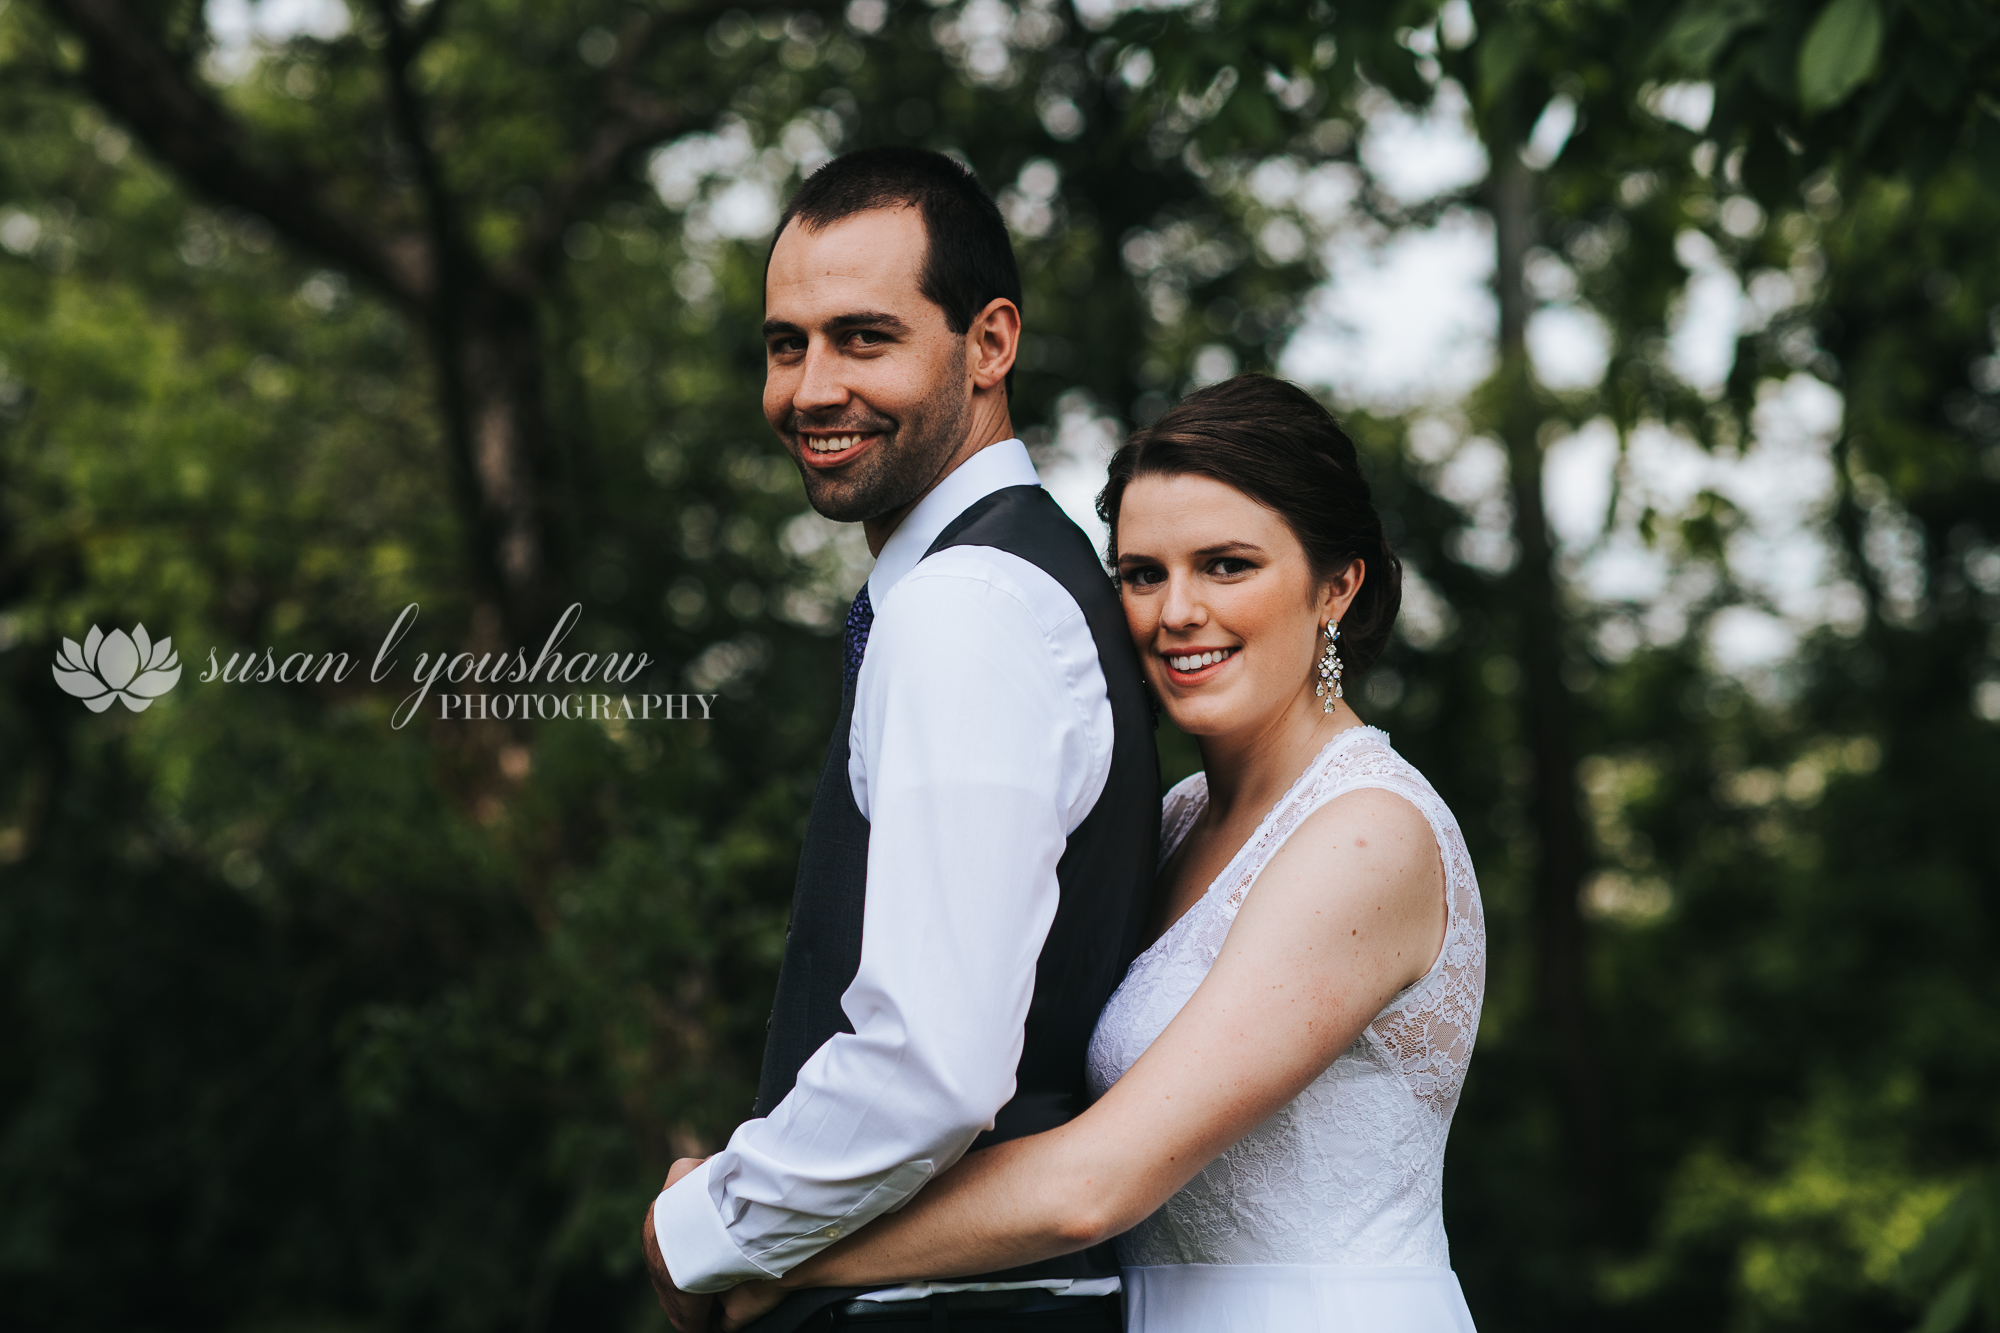 Adena and  Erik Wedding 05-17-2019 SLY Photography-41.jpg